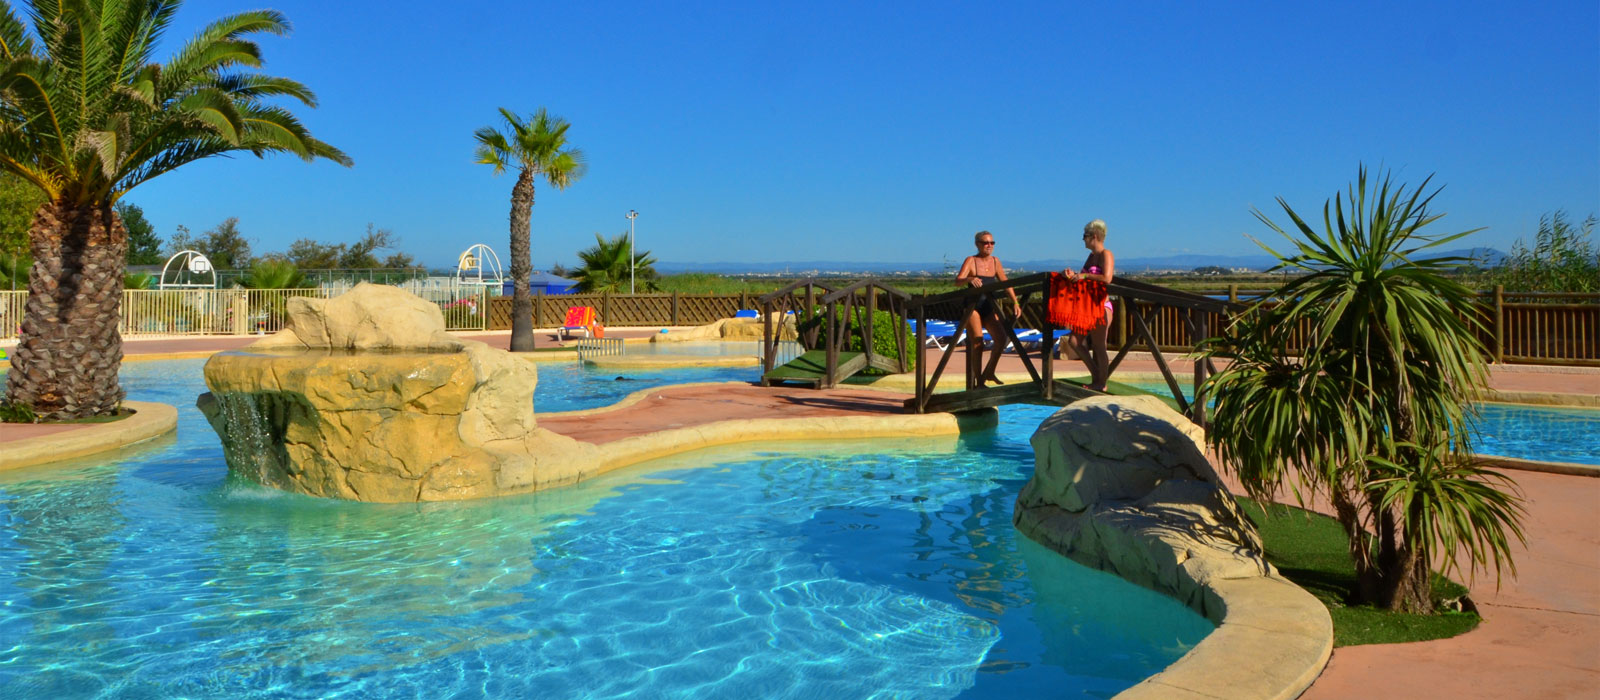 Vacance camping montpellier vacance camping naturiste